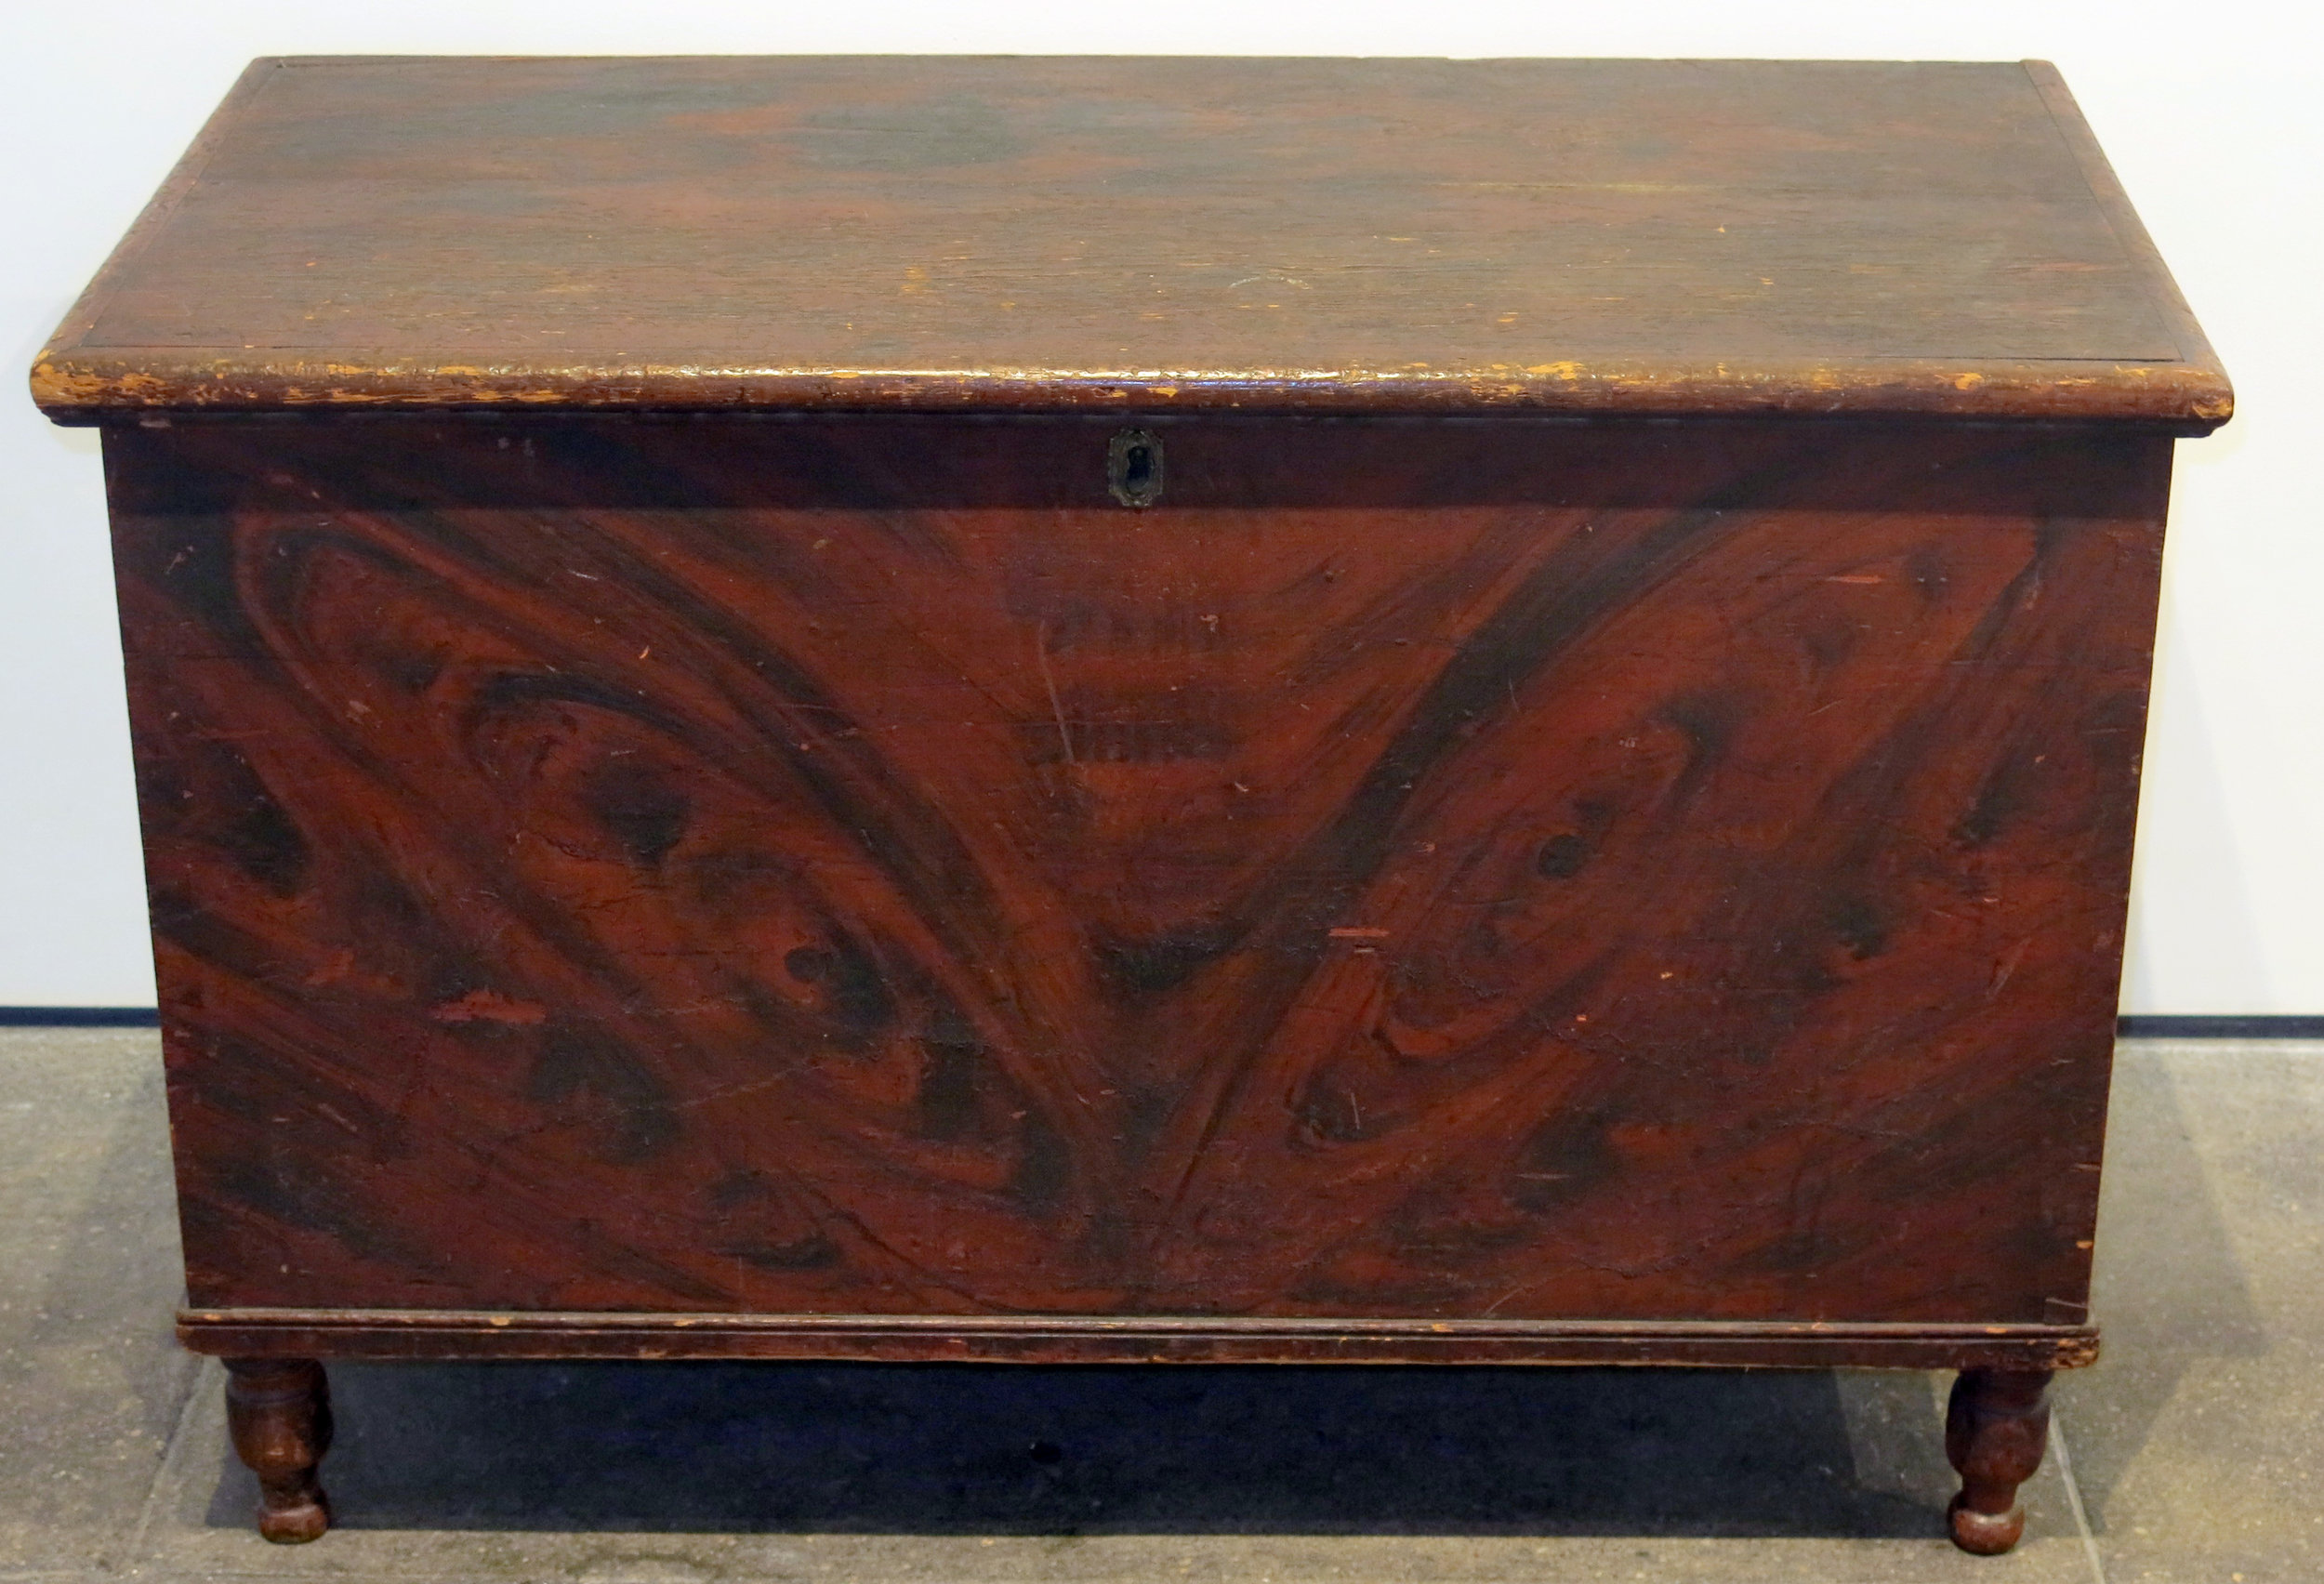 Early American,  Chest,  18th c., Wood with cast iron hinge, 24.25h x 38w x 20d in.